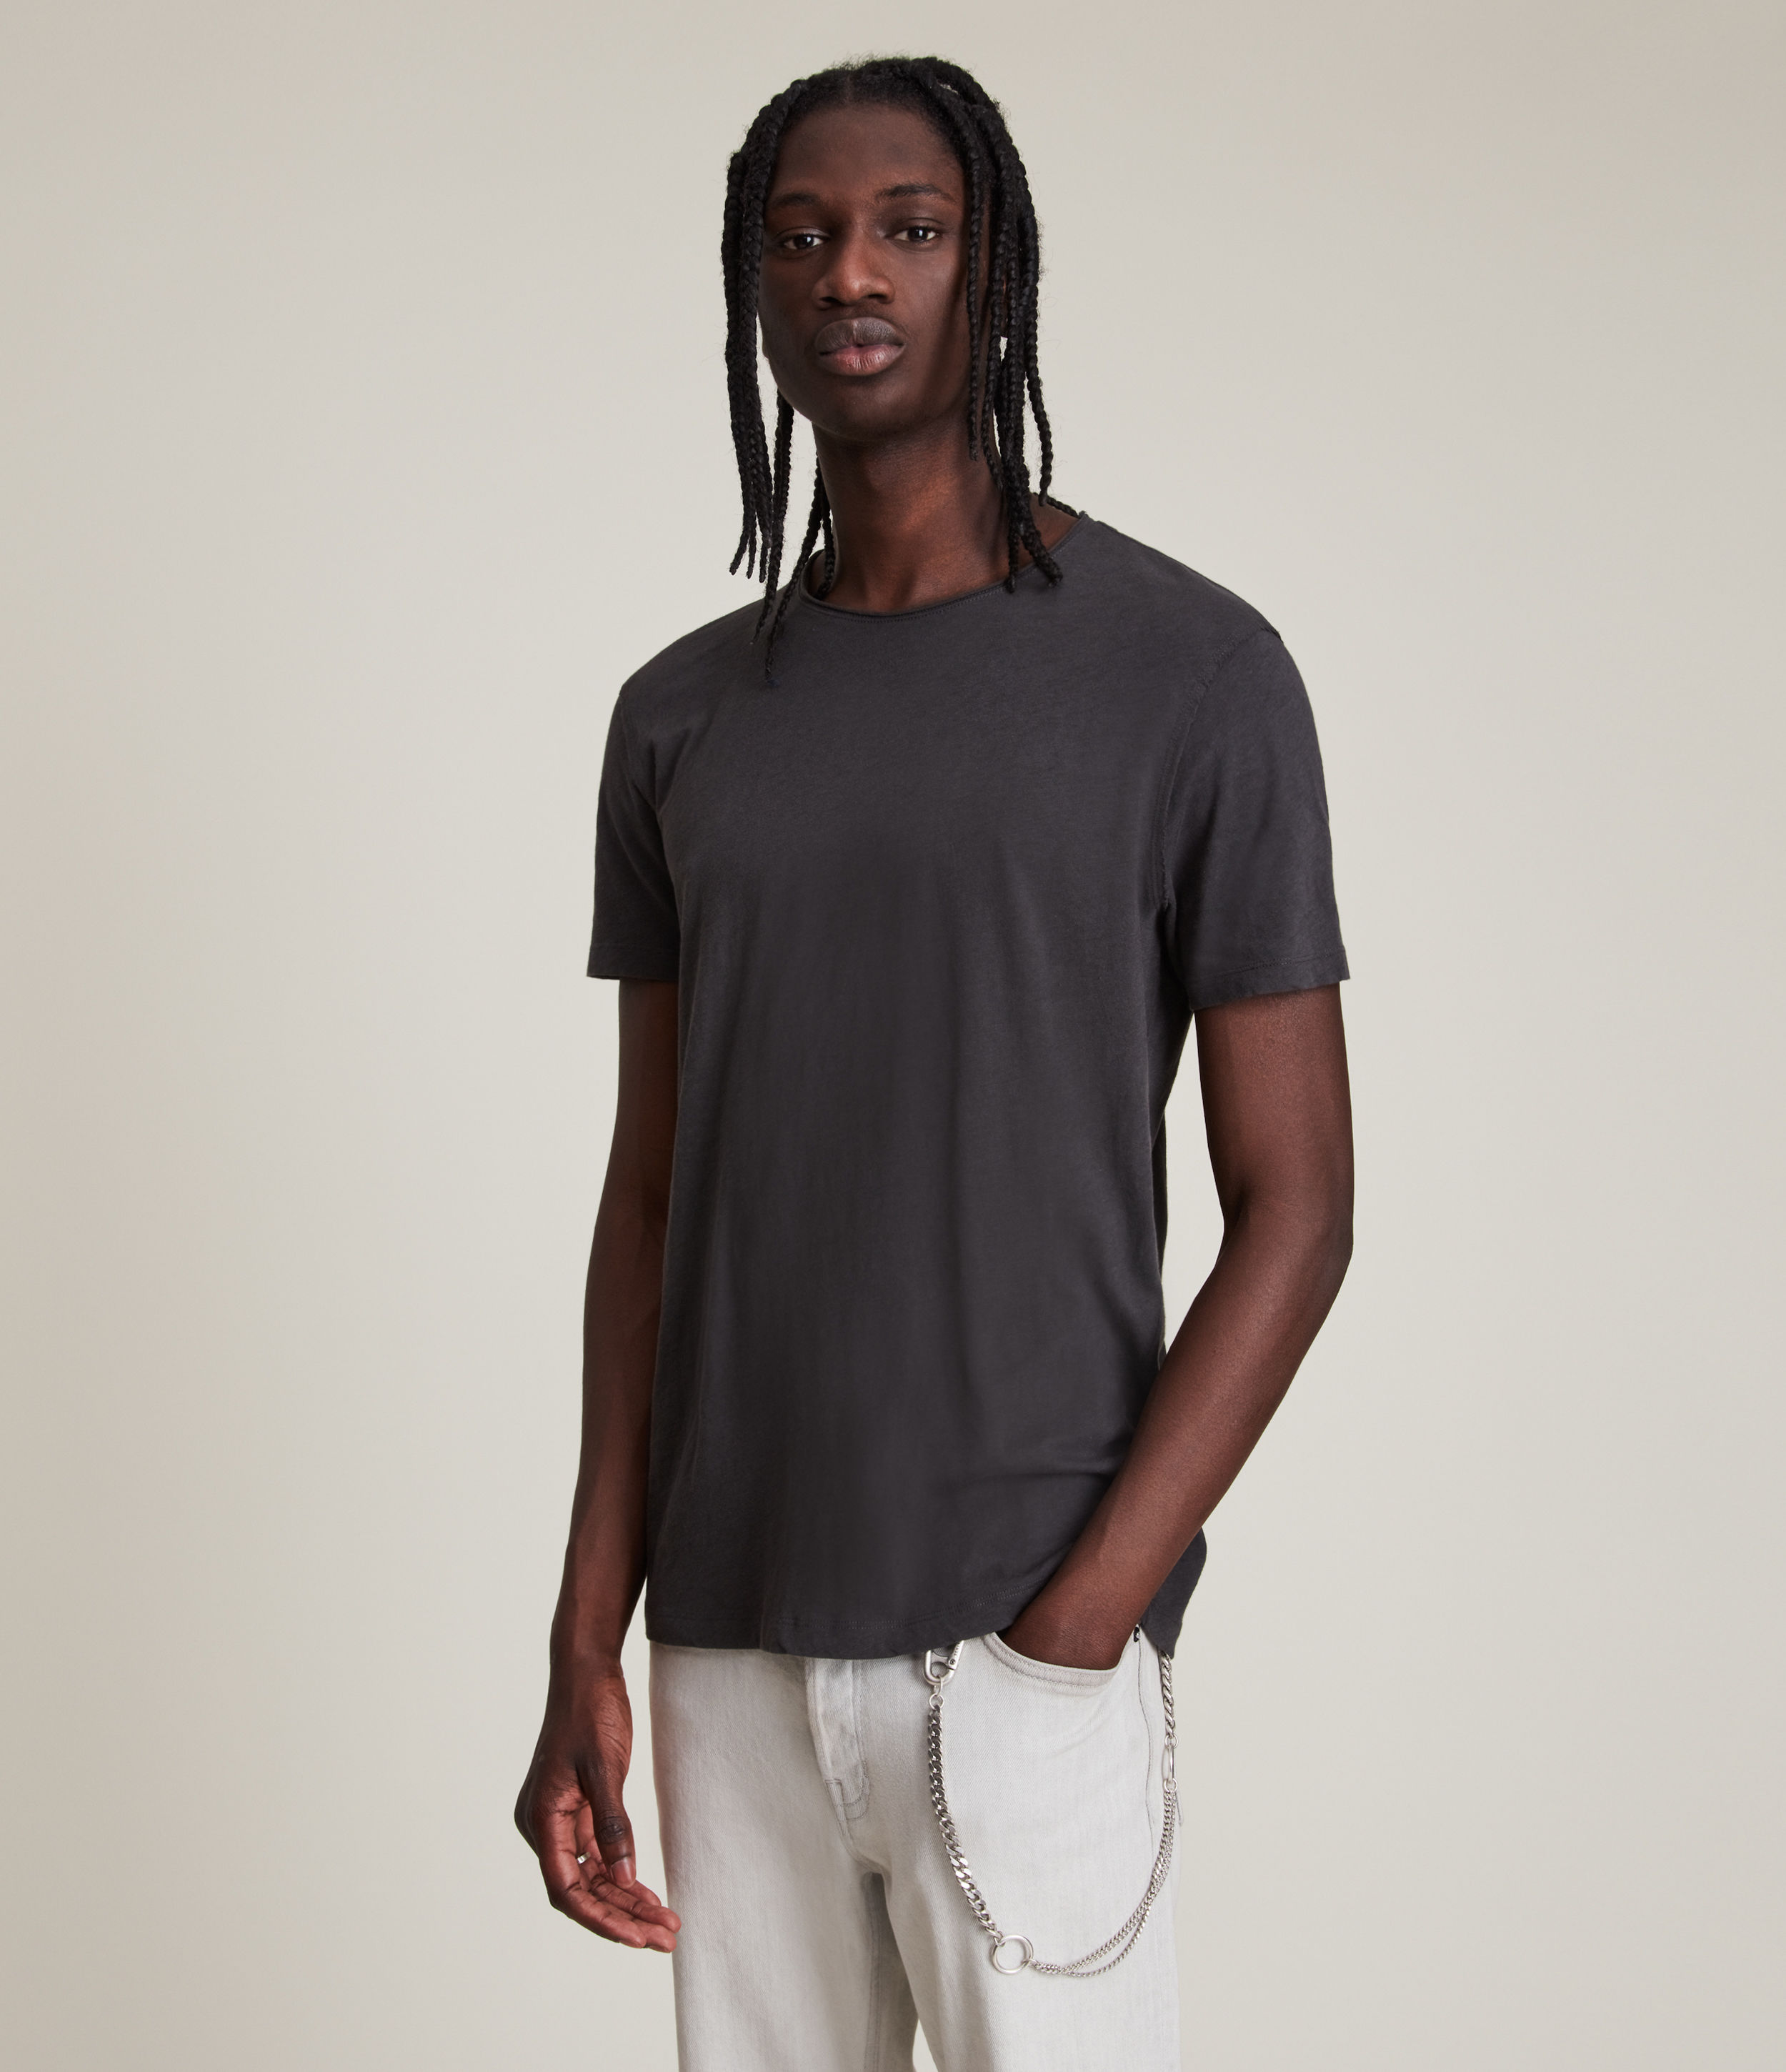 AllSaints Men's Cotton Regular Fit Figure Crew T-Shirt, Black, Size: XXL